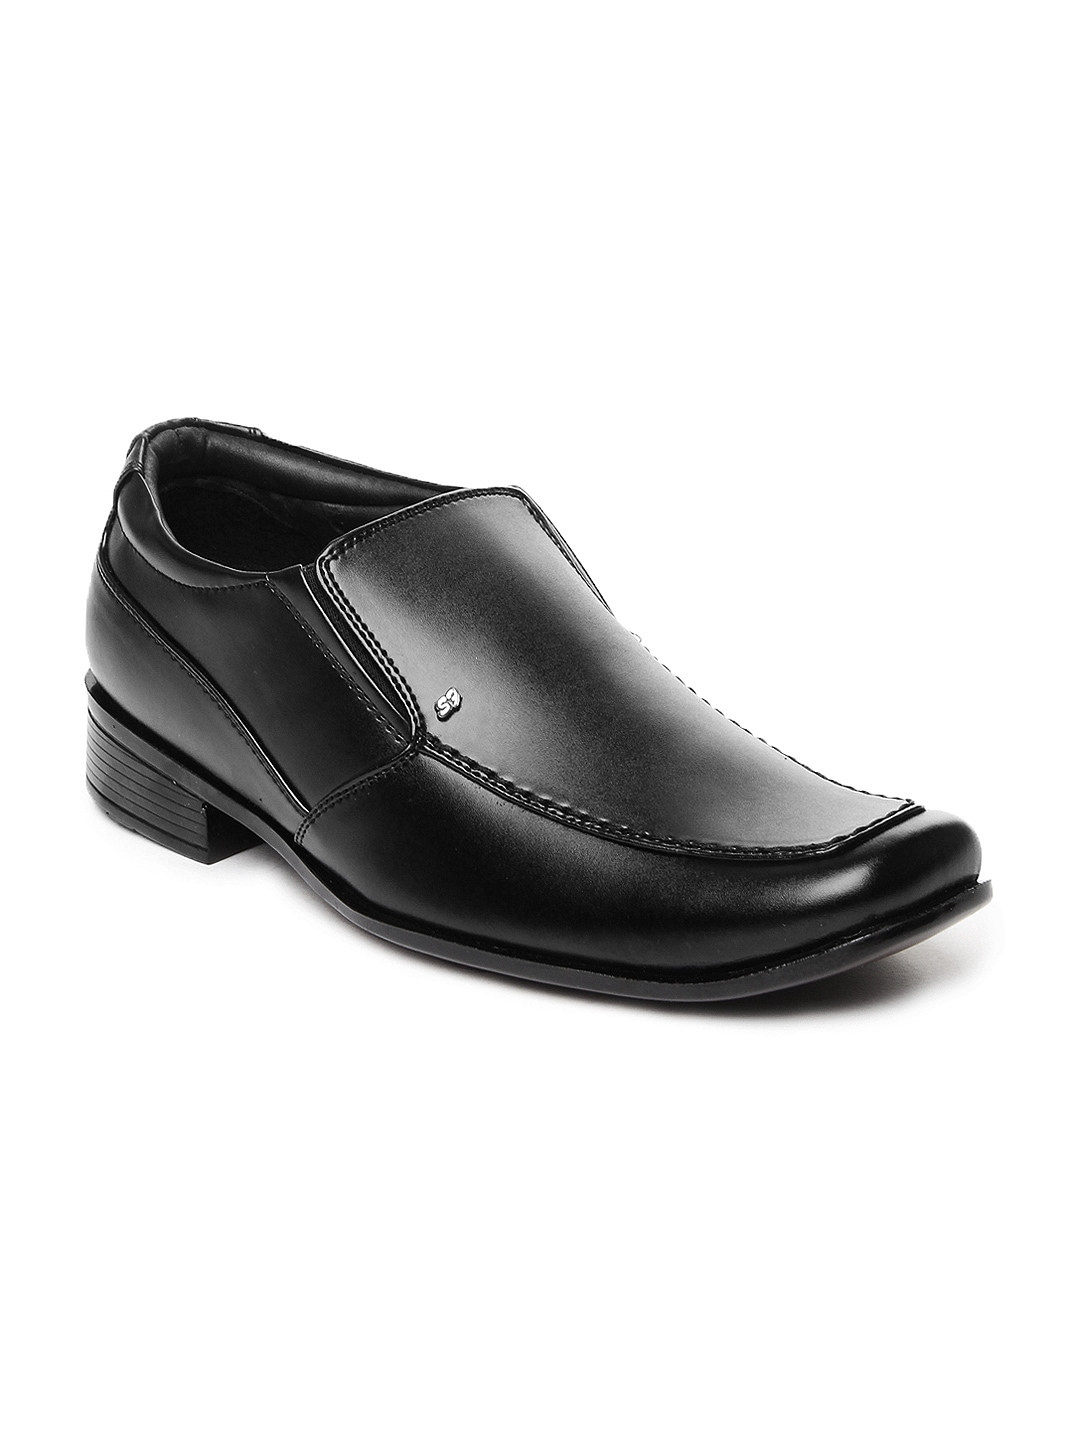 semi formal leather shoes price at flipkart snapdeal